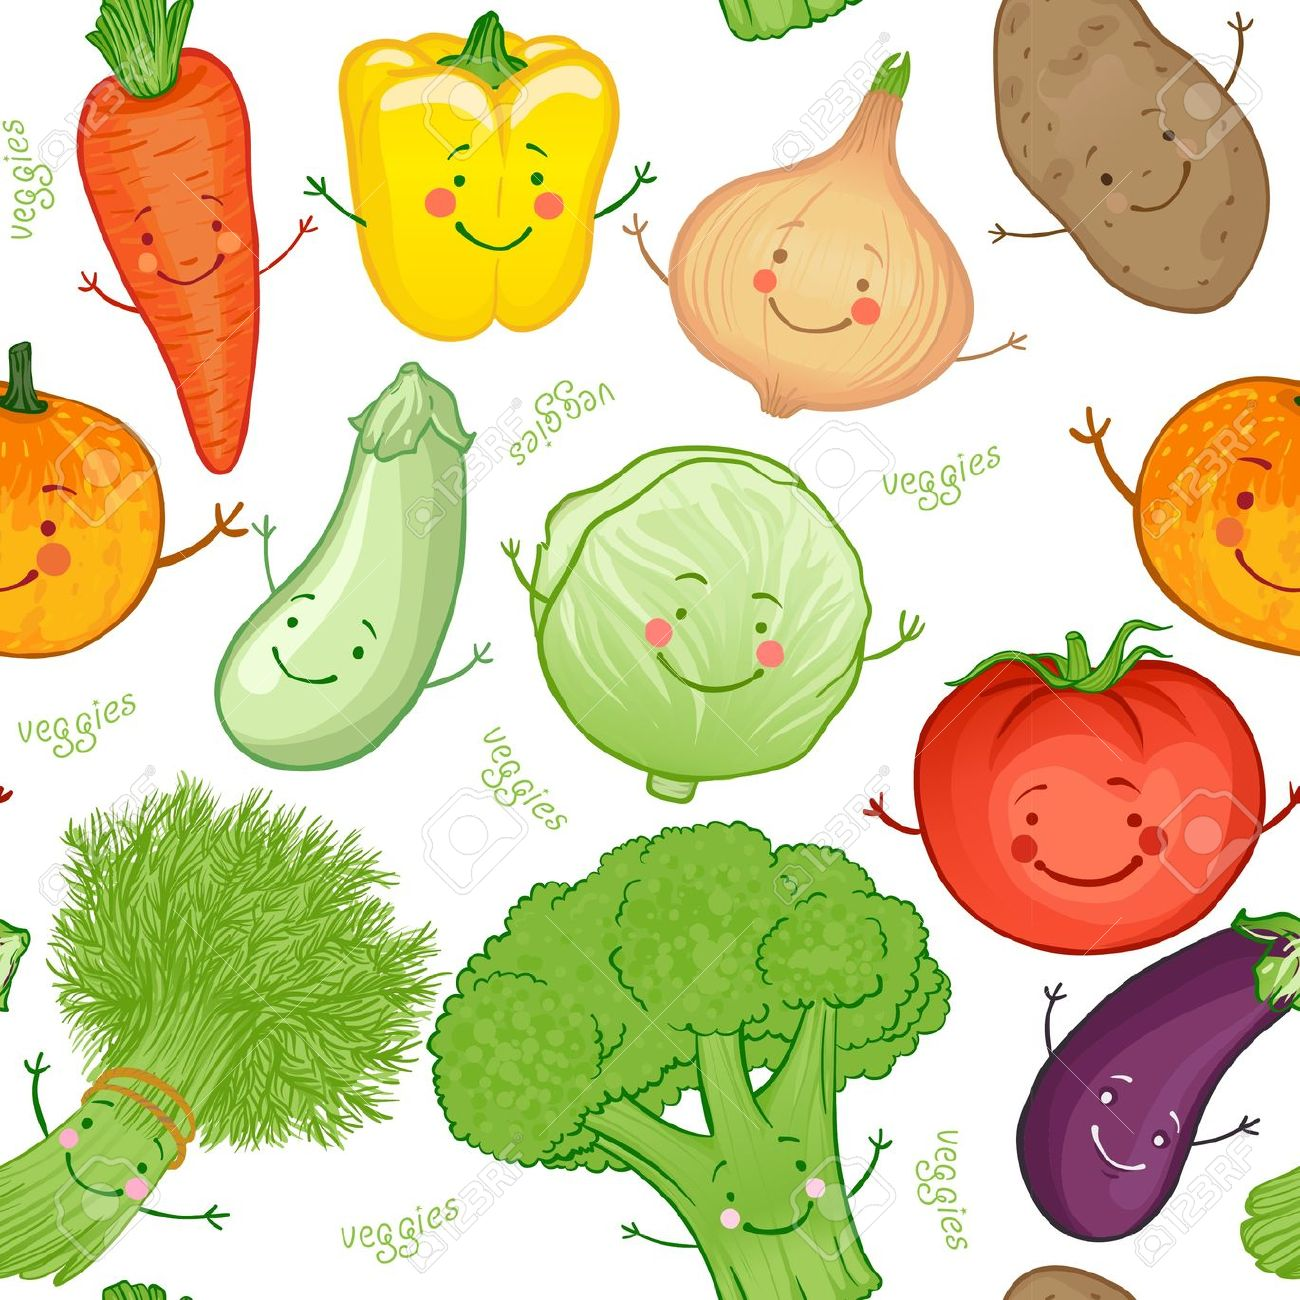 Salad vegetable clipart 20 free Cliparts | Download images ...